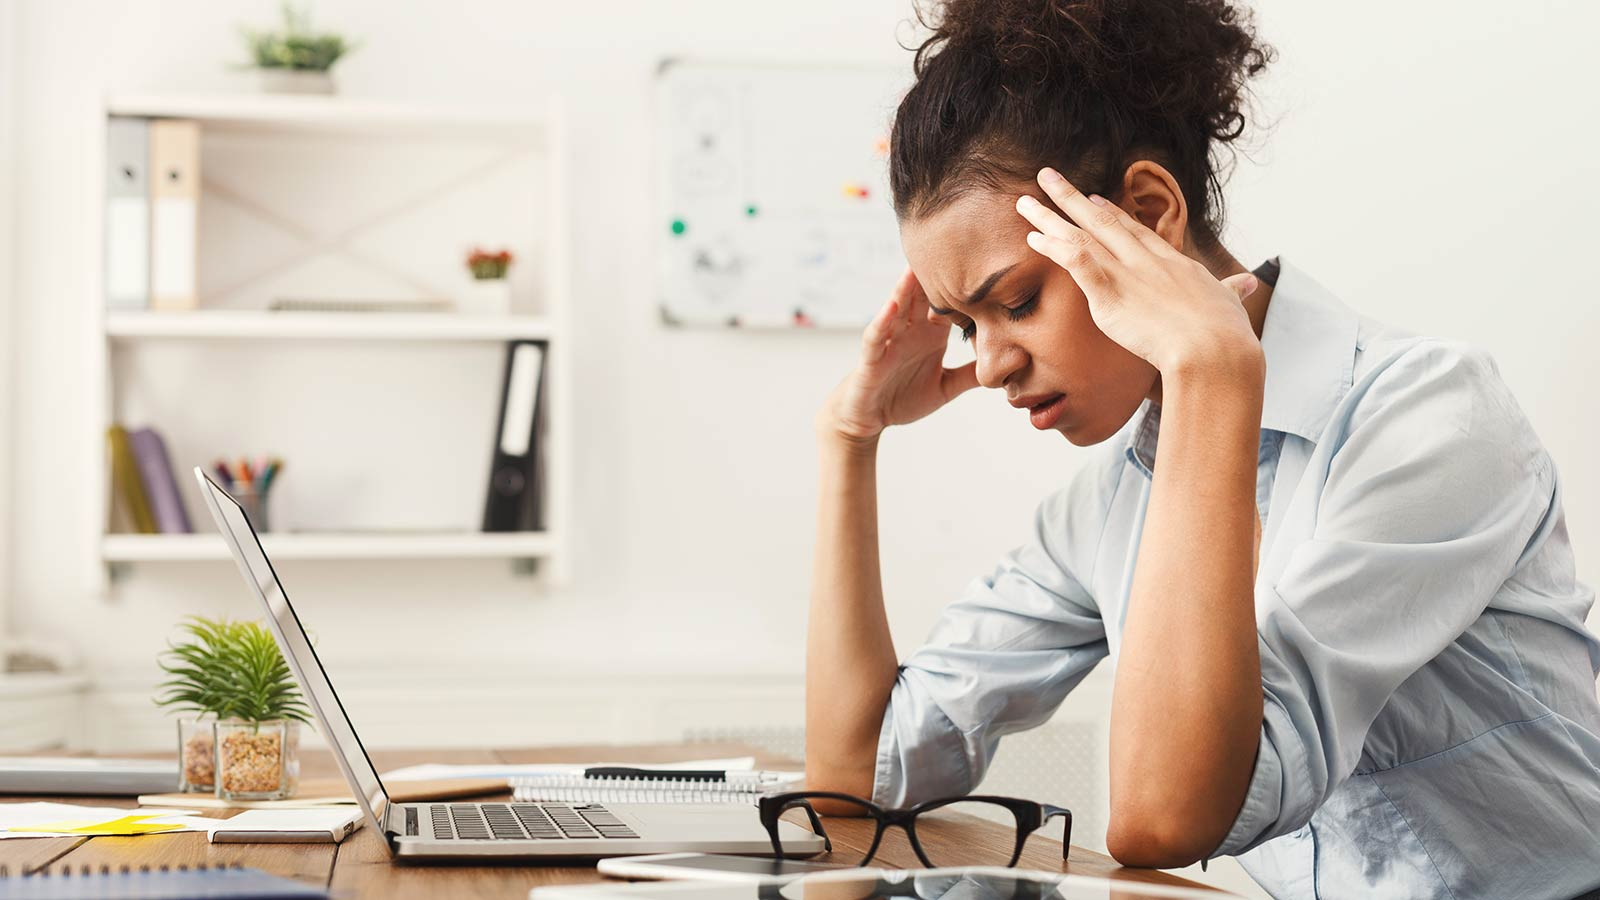 Woman rubbing her temples, overwhelmed by managing her productivity system.